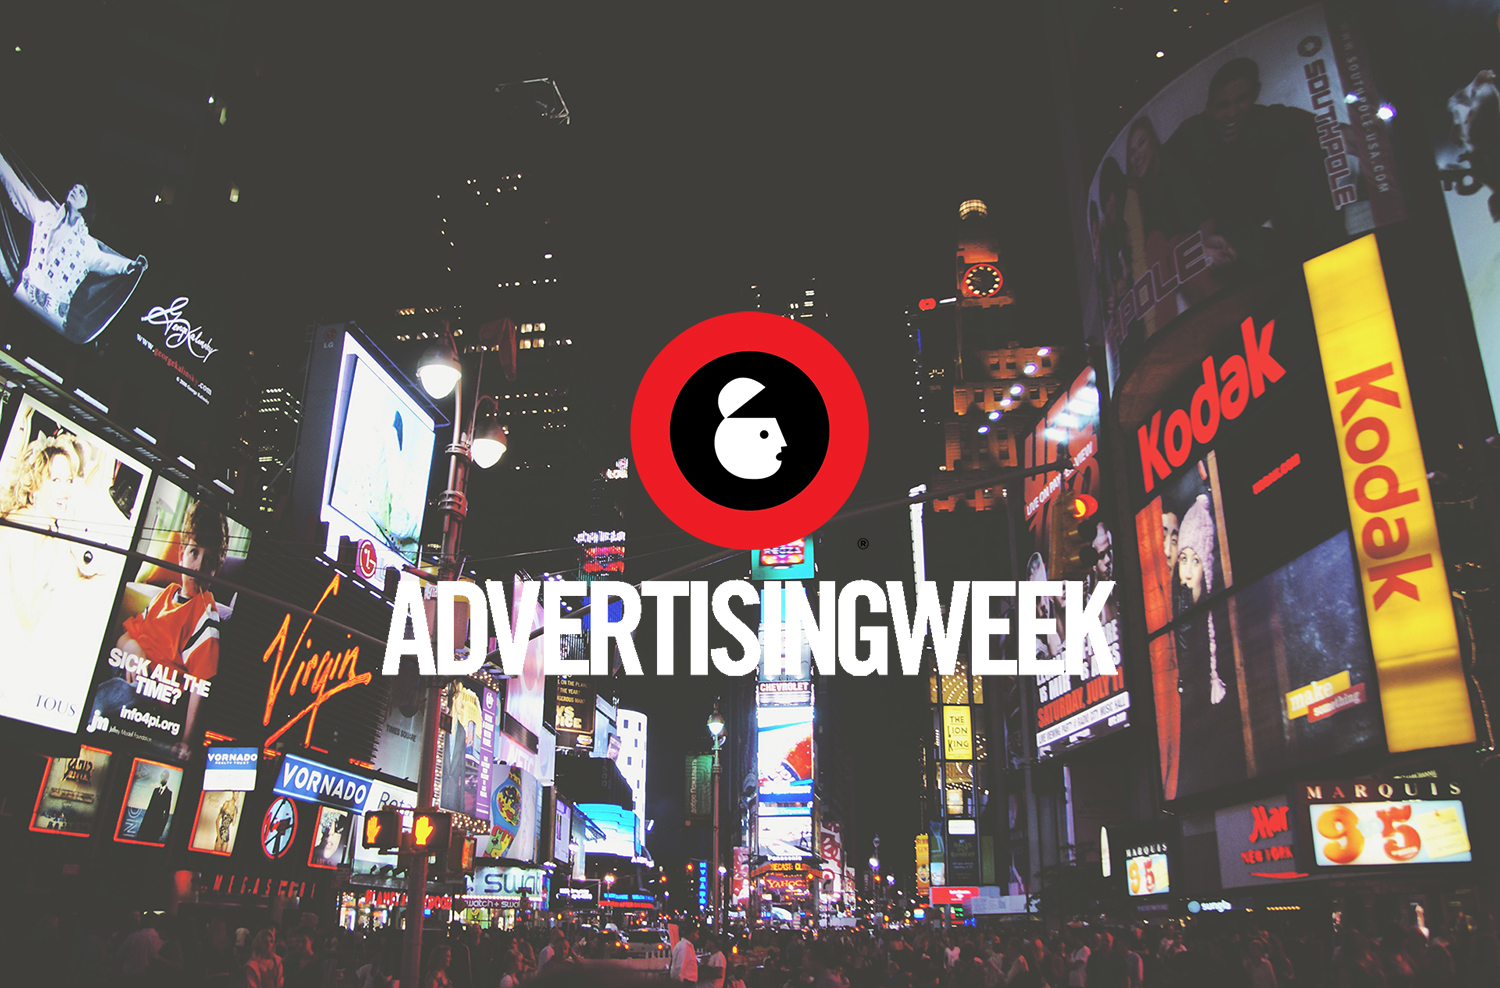 Advertising Week New York 2017